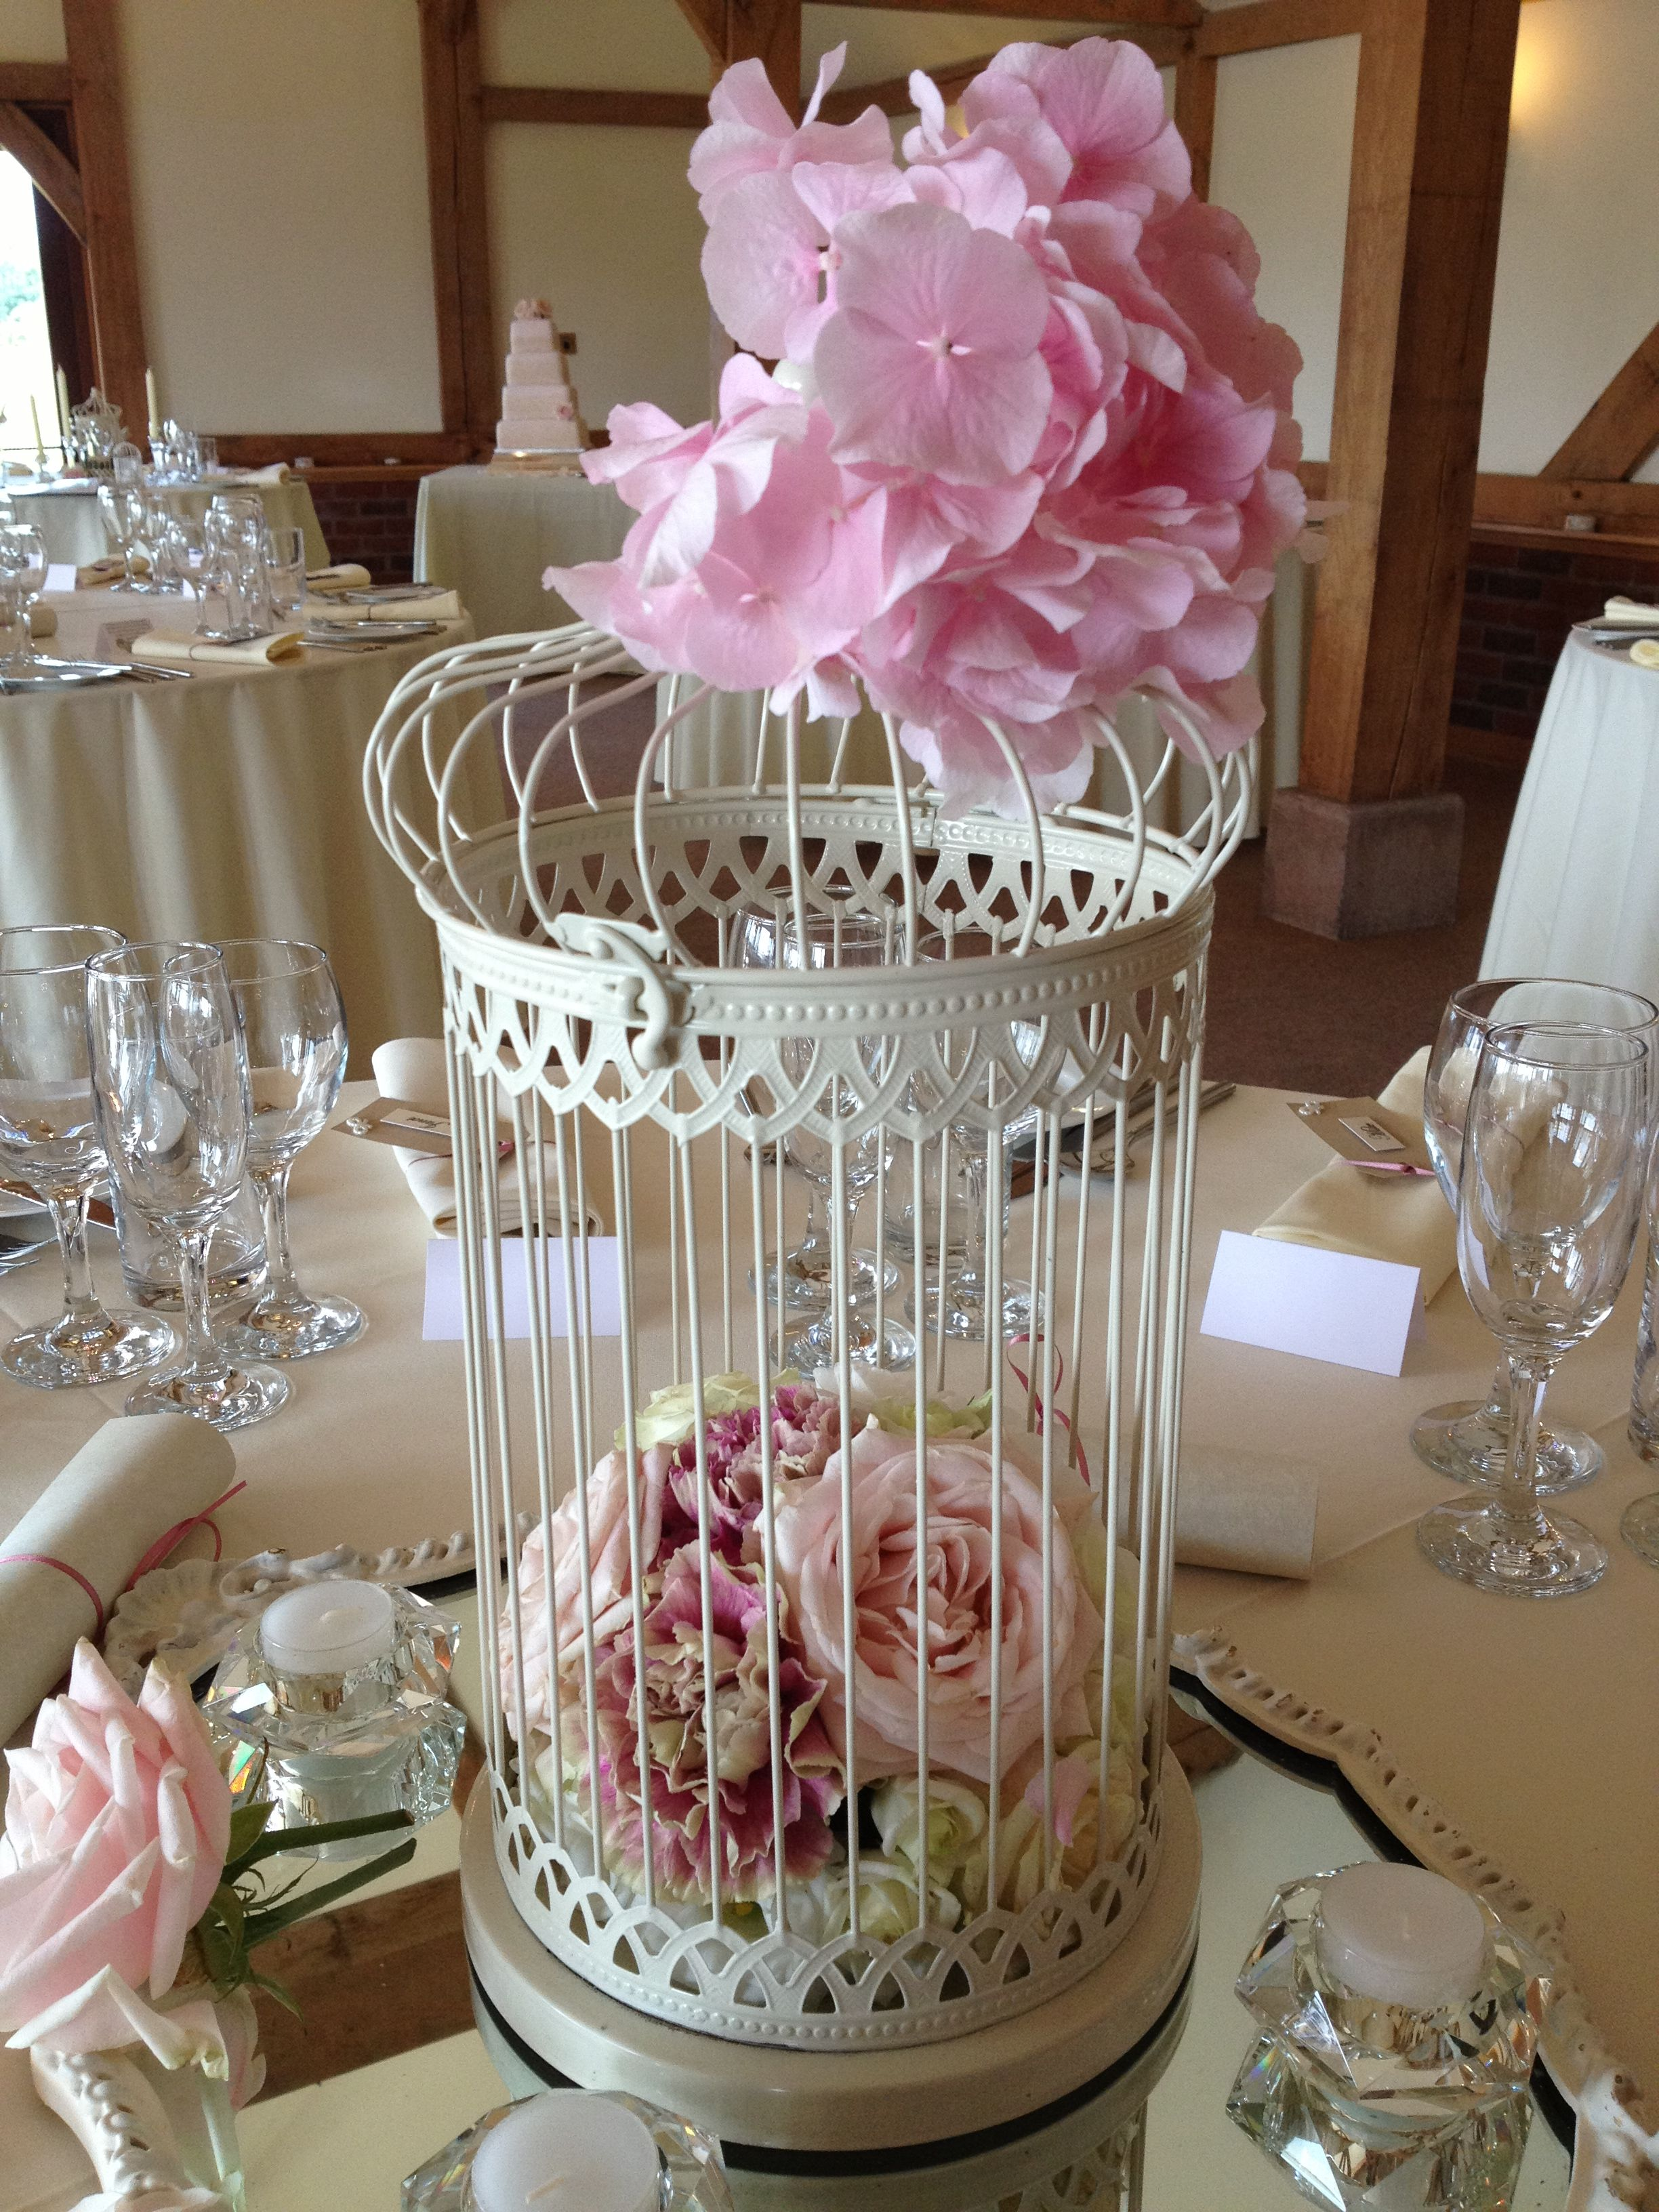 Birdcage With Internal Posy Of Pink Roses, Carnations And Eustoma